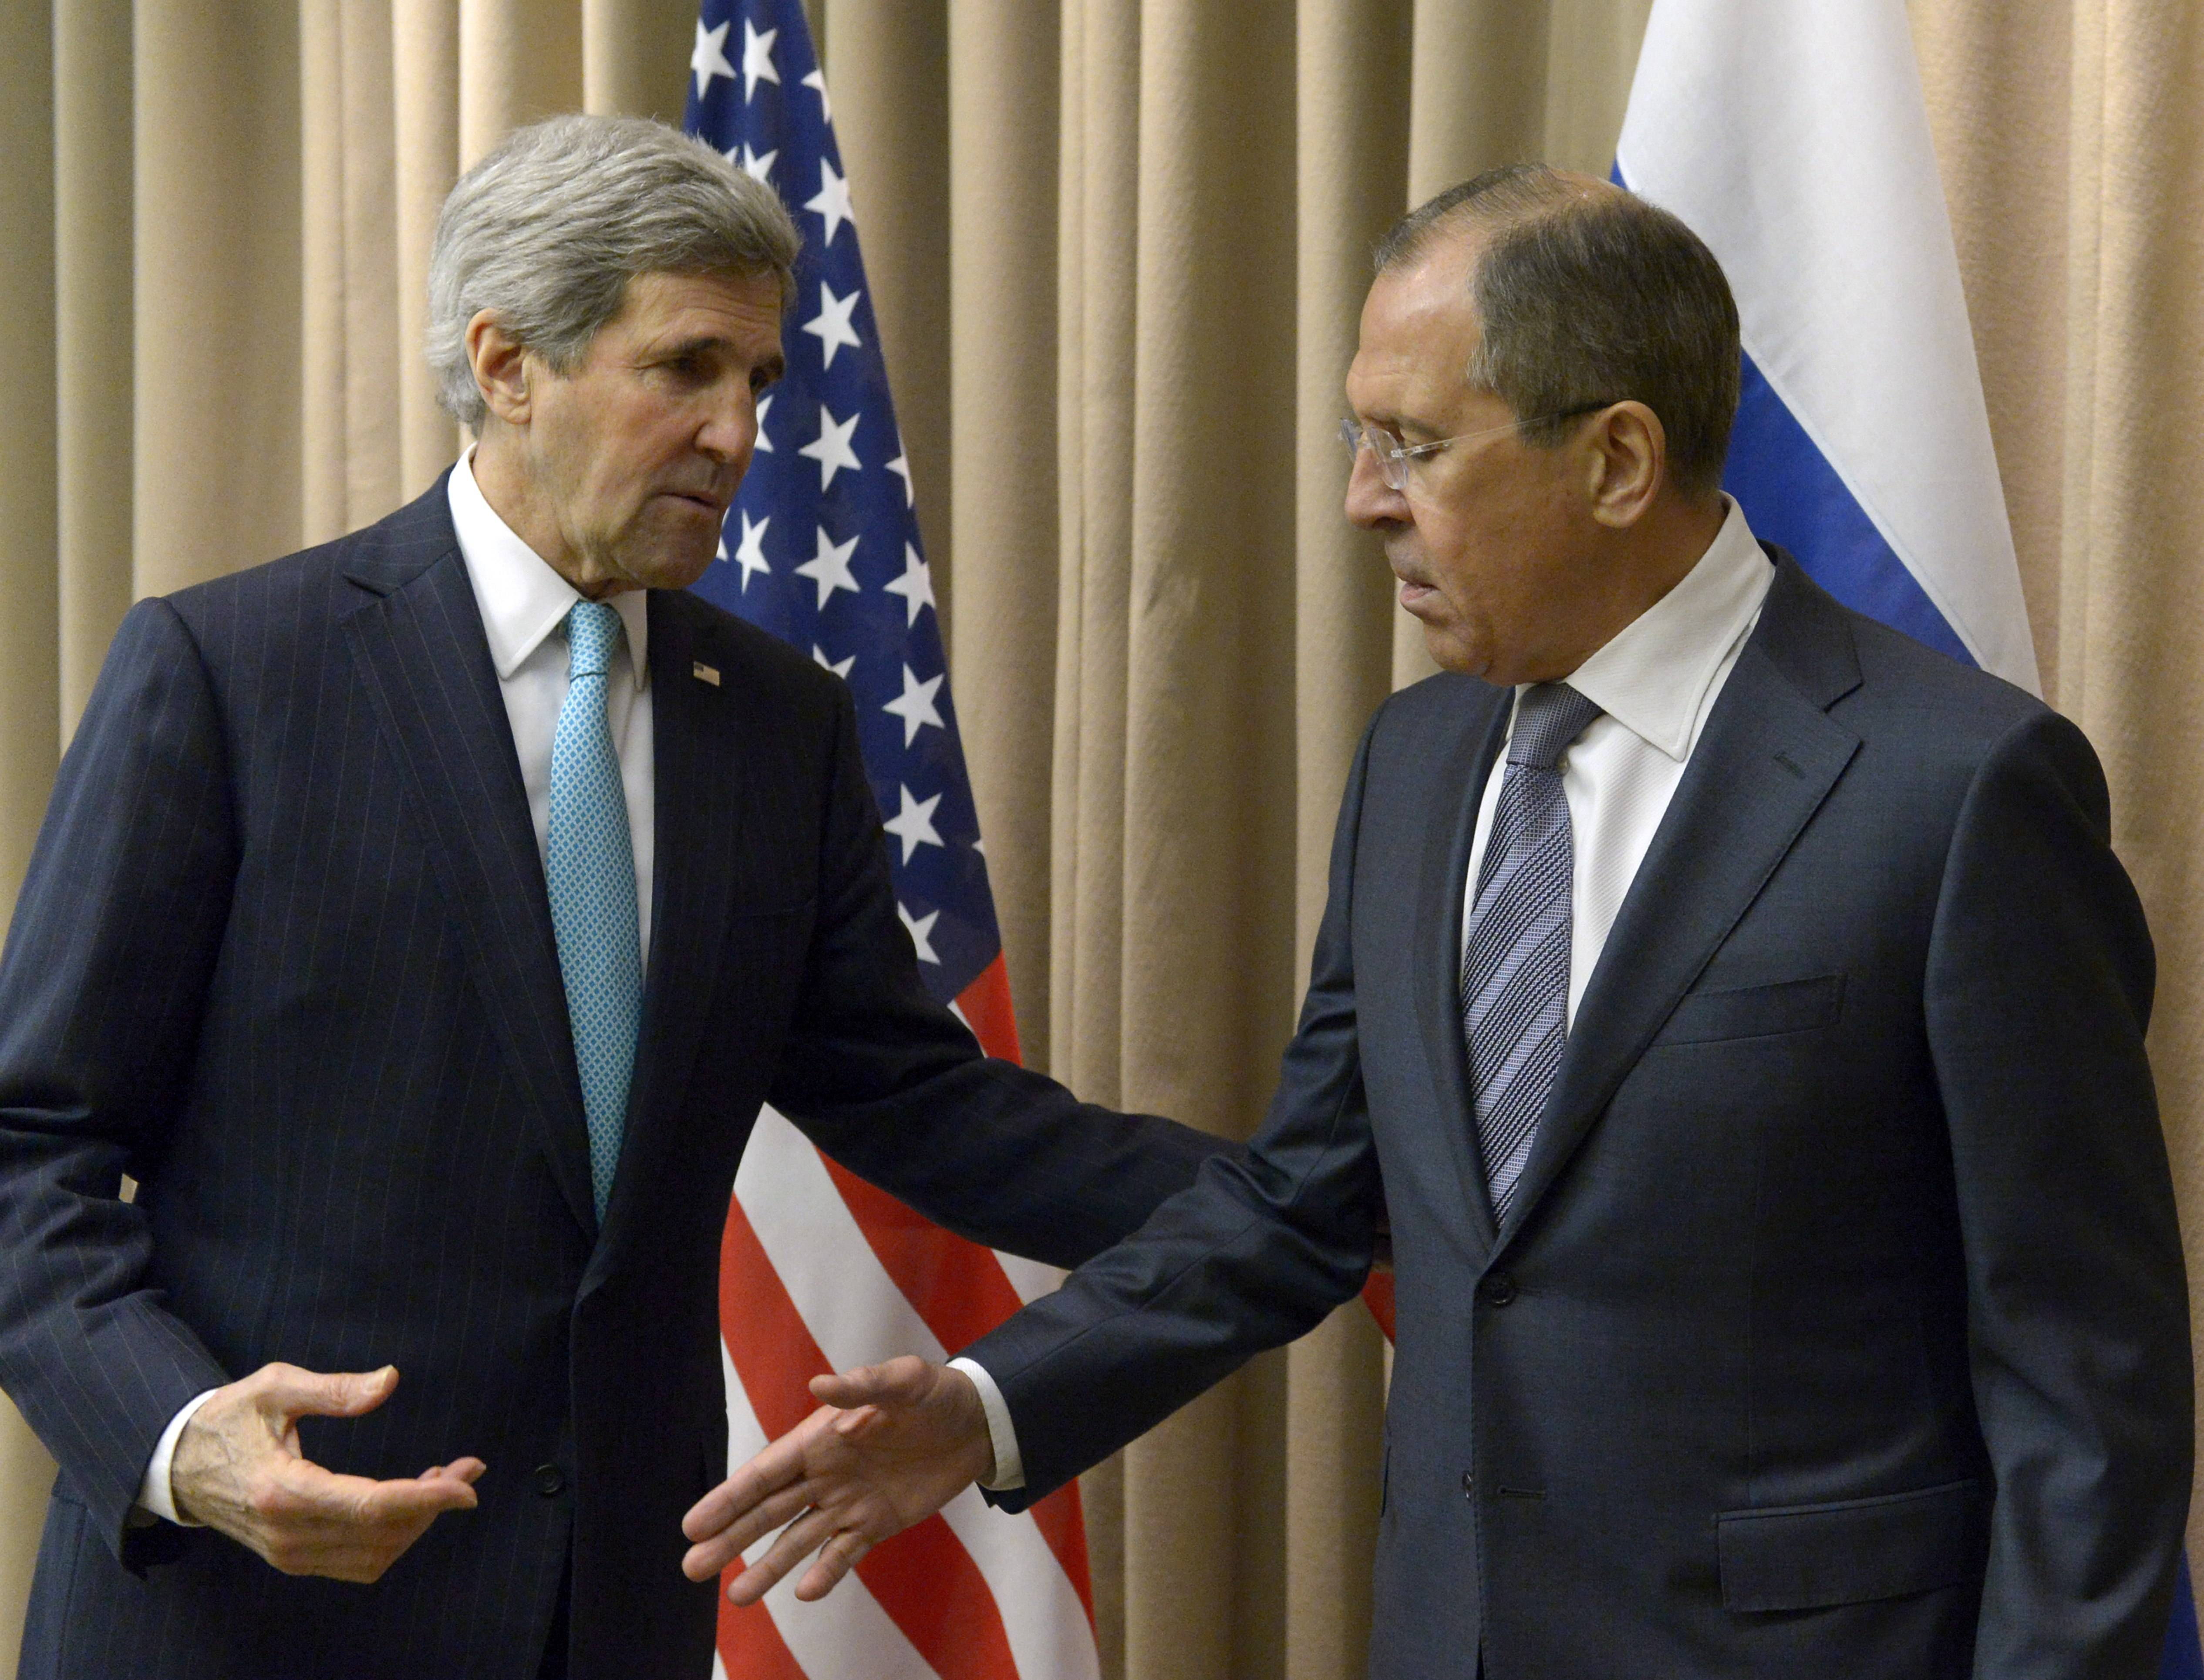 U.S. Secretary of State John Kerry, left, shakes hands Thursday with Russian Foreign Minister Sergey Lavrov before a bilateral meeting to discuss the ongoing situation in Ukraine as diplomats from the U.S., Ukraine, Russia and the European Union gather for discussions in Geneva. Ukraine is hoping to placate Russia and calm hostilities with its neighbor even as the U.S. prepares a new round of sanctions to punish Moscow for what it regards as fomenting unrest.